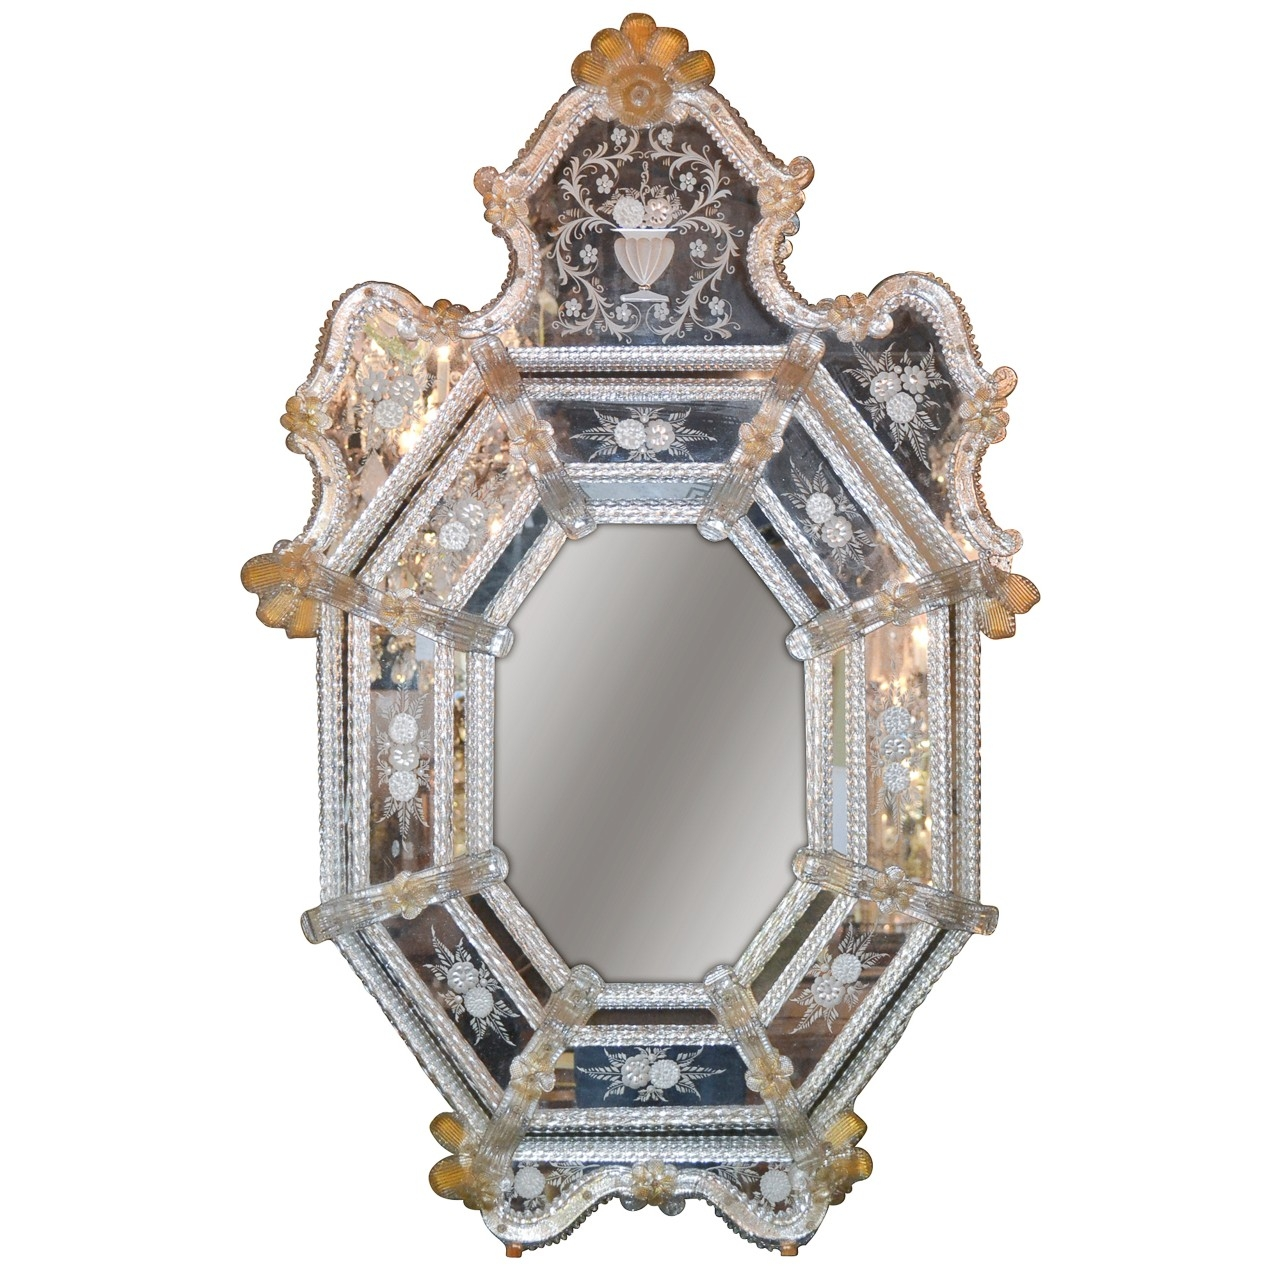 Beautiful Antique Venetian Etched Glass Mirror Legacy Antiques Inside Venetian Etched Glass Mirror (Image 4 of 15)